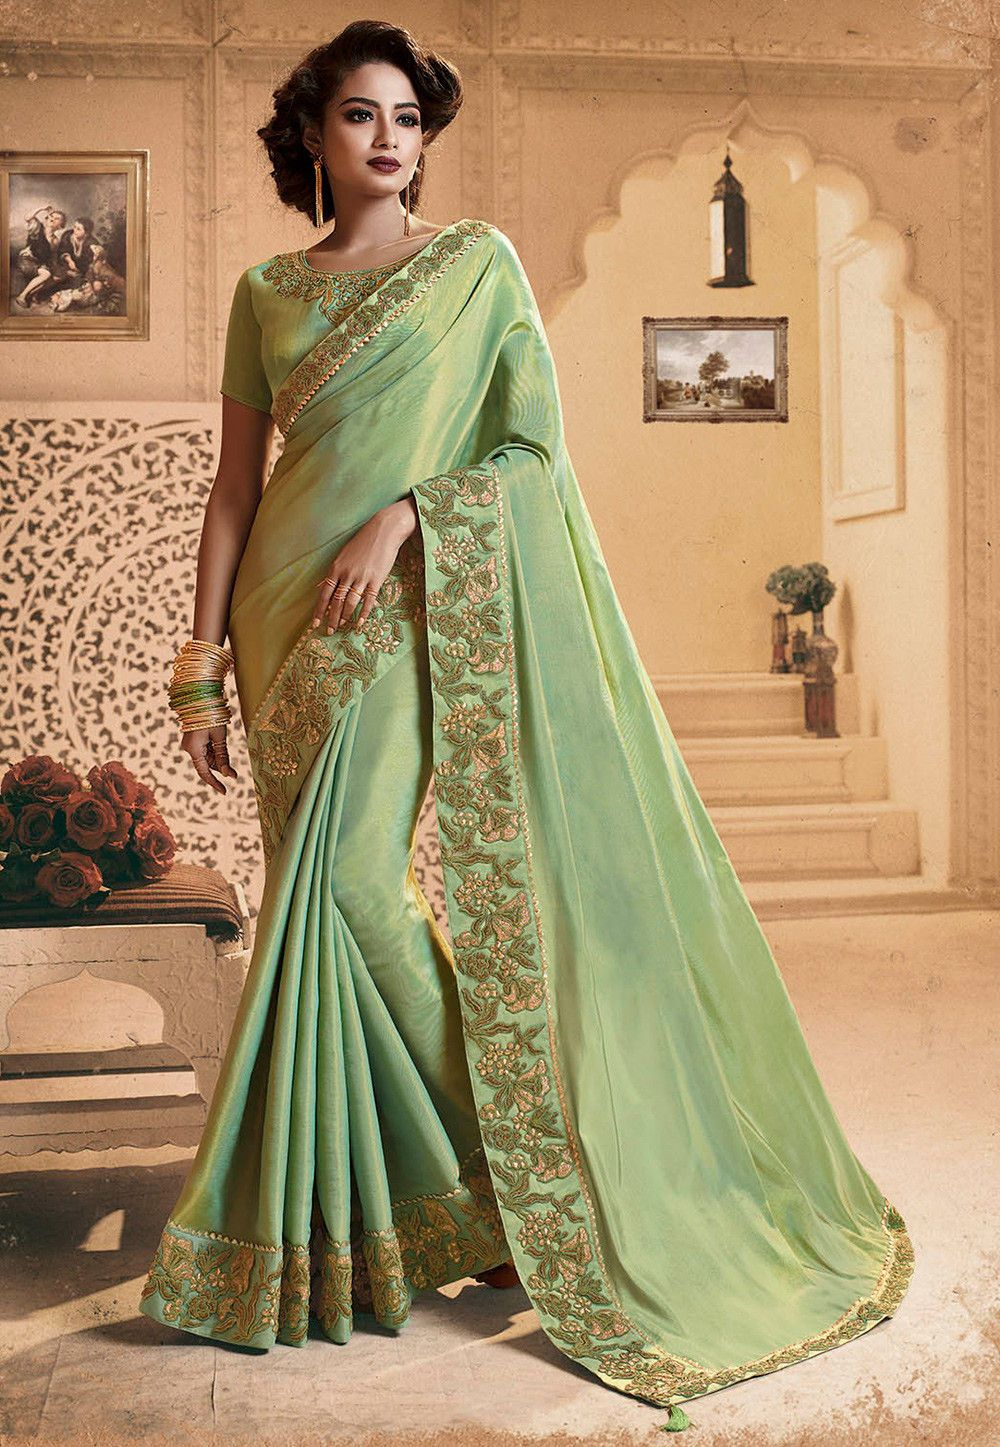 049e047d3c Buy Embroidered Border Art Silk Shimmer Saree in Pastel Green online, Item  code: SPFA3999, Color: Green, Occasion: Party, Festive, Work: Resham,  Traditional ...